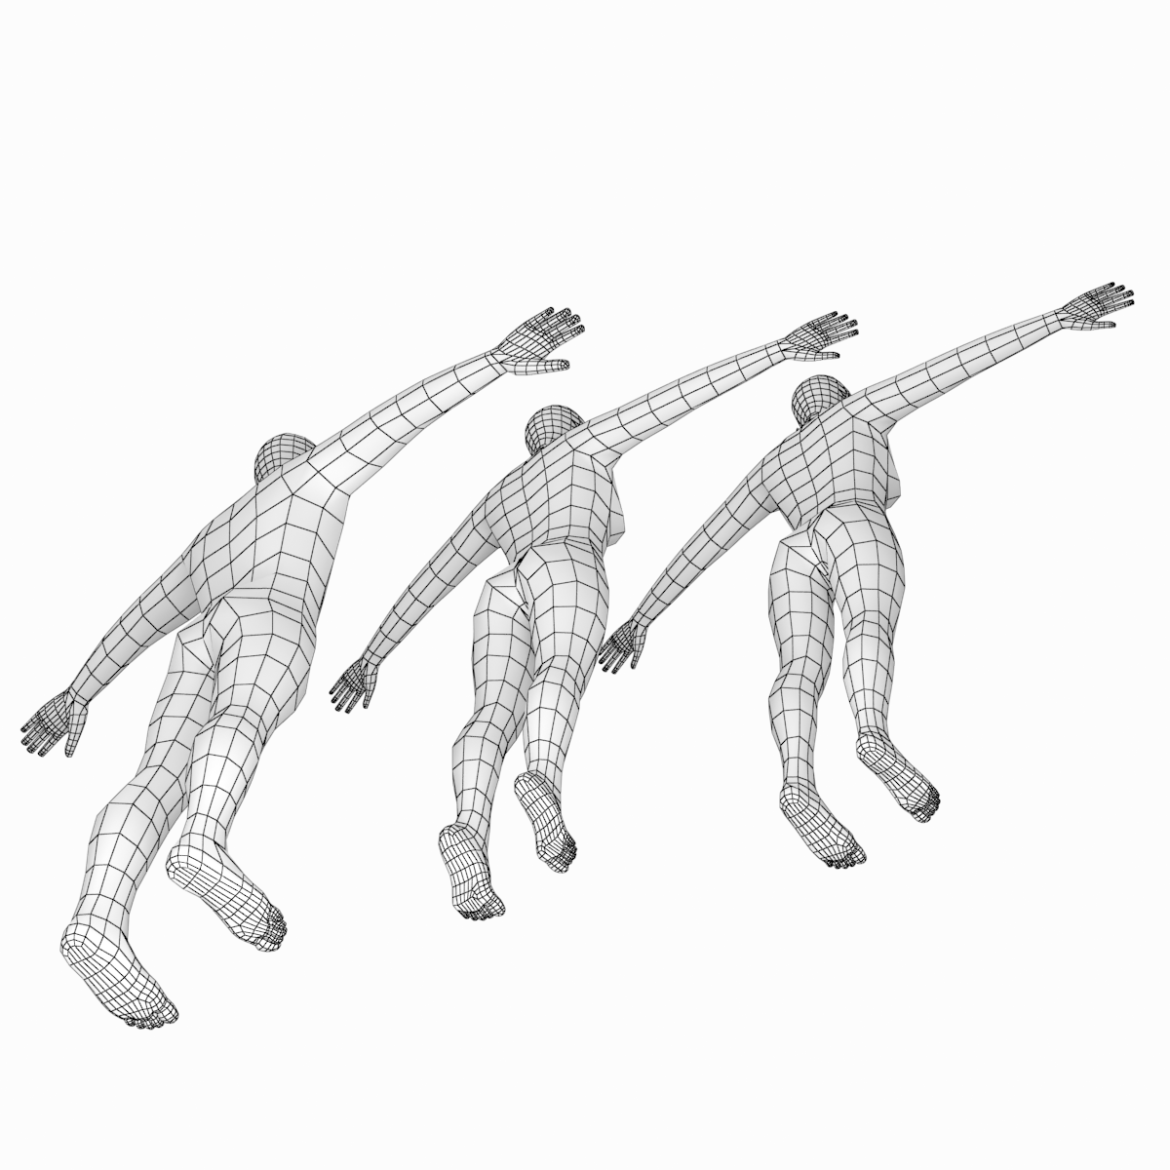 male and female base mesh in t-pose 3d model png stl obj ma mb max fbx dxf dwg dae c4d 3ds txt 305171